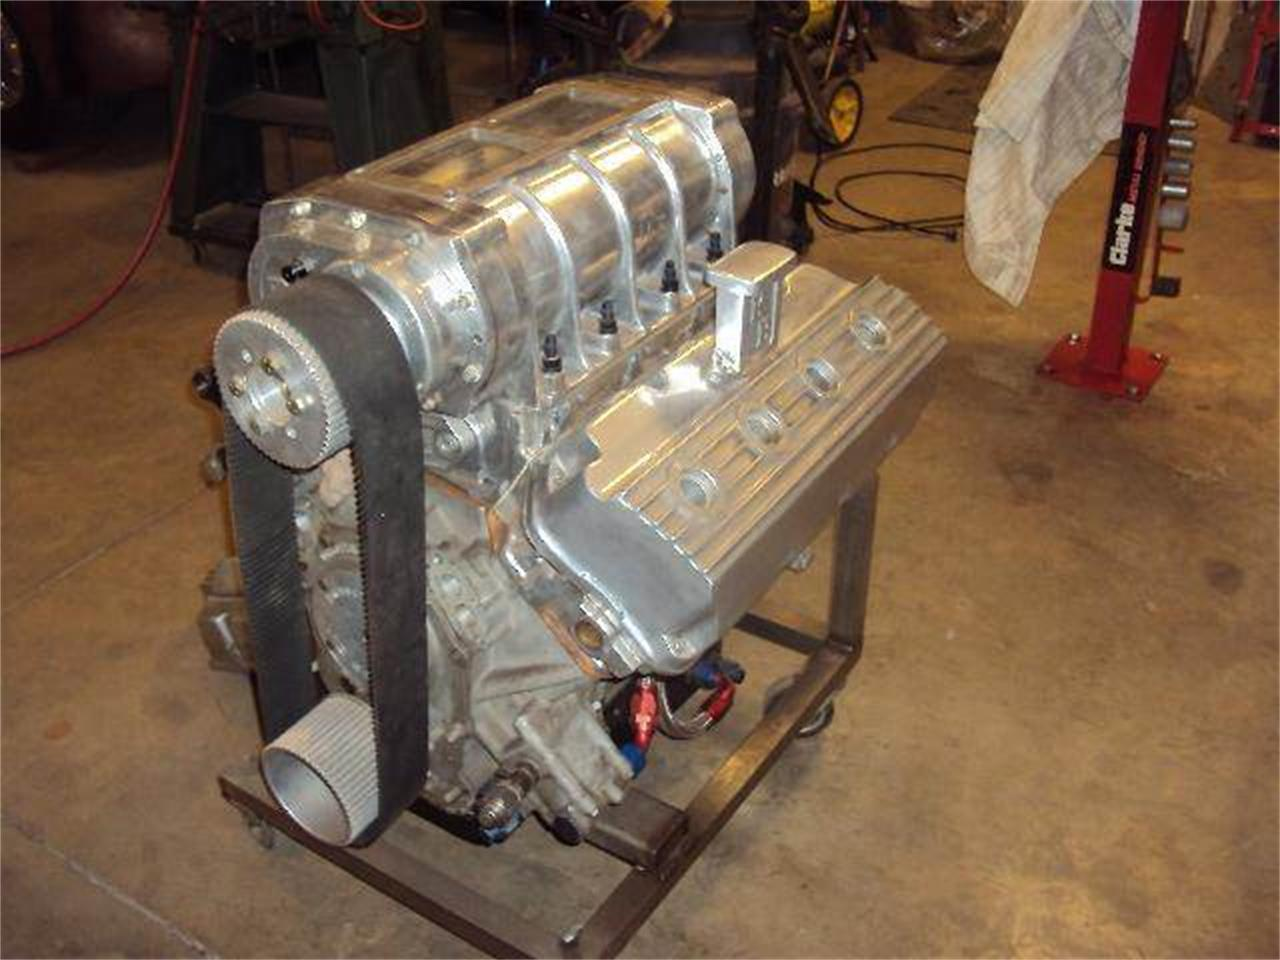 Large Picture of Classic 1969 hemi engs parts hemi stuff mis Auction Vehicle Offered by Marshall Motors - 7P5A